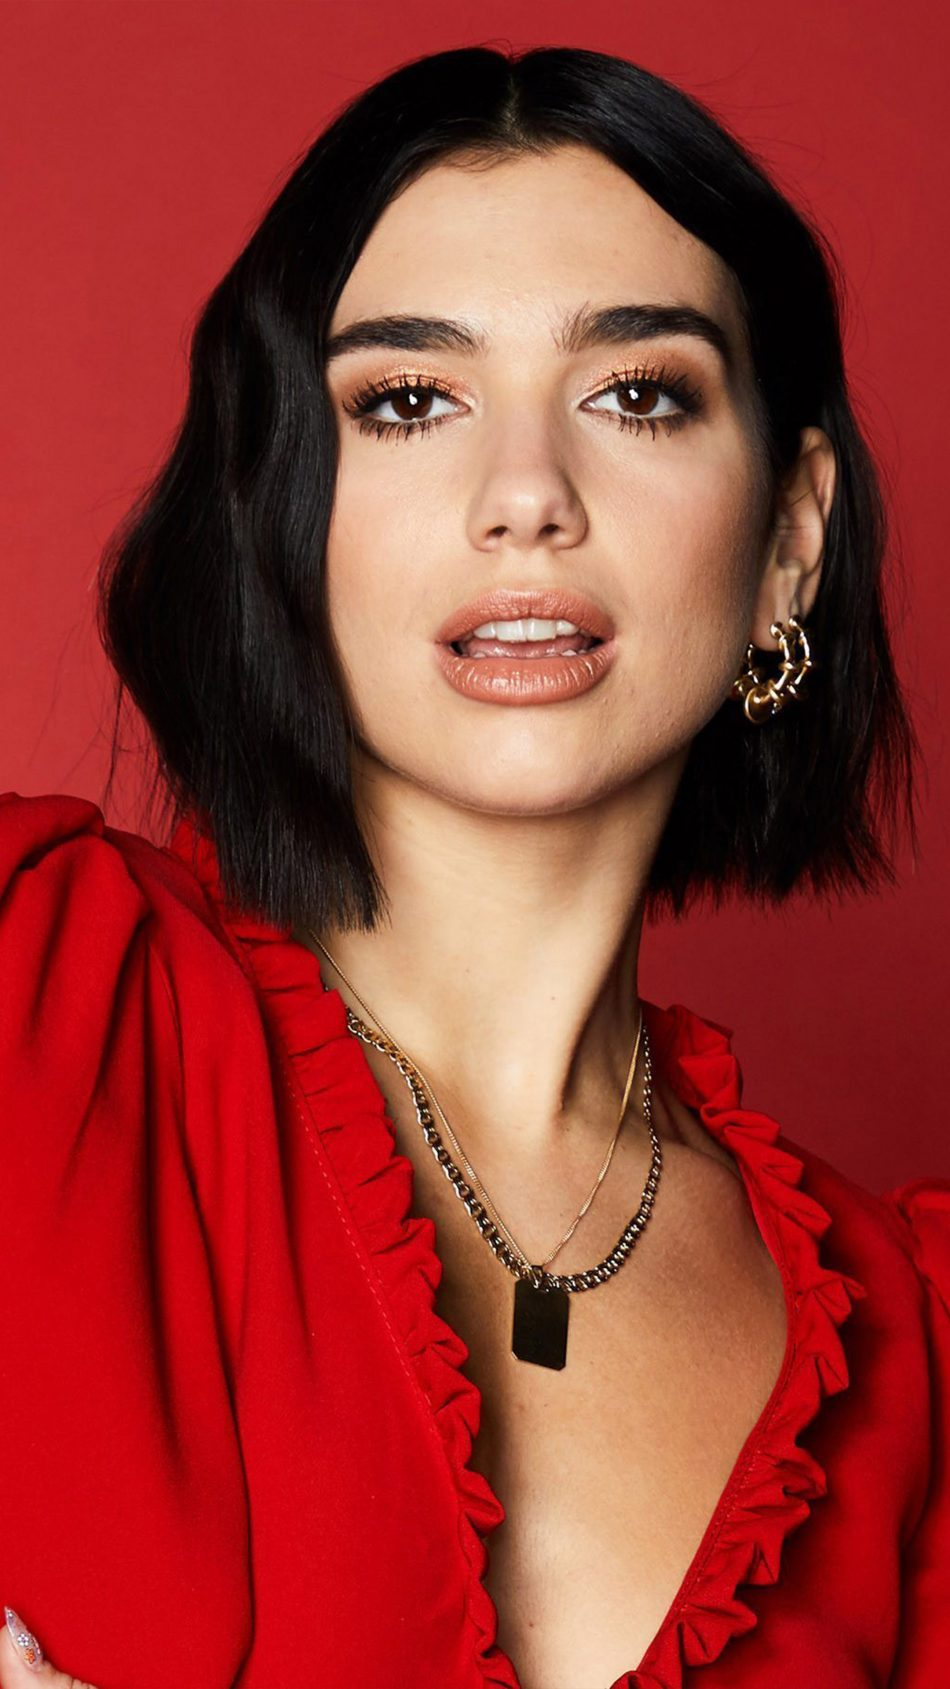 Dua Lipa In Red Dress 2019 4K Ultra HD Mobile Wallpaper